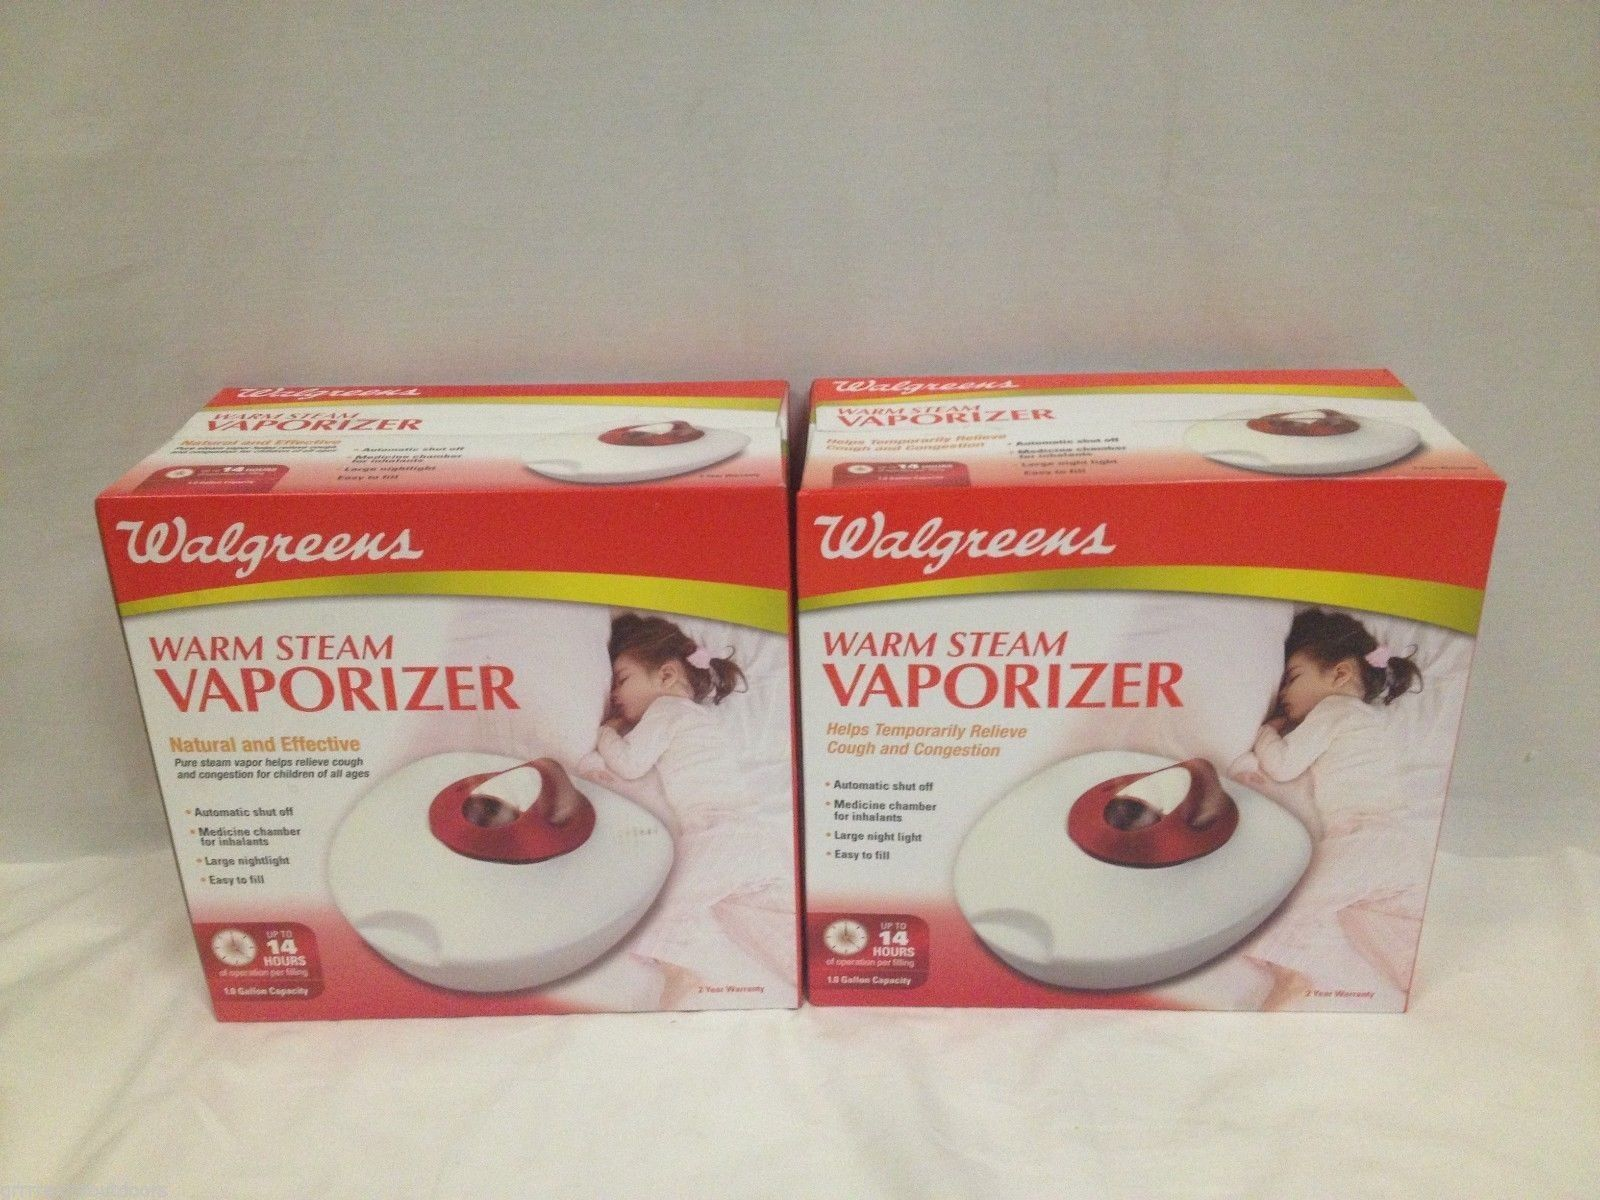 Warm Steam Vaporizer 2100WGN Medicine Chamber 1 Gallon Capacity 2 Pack Walgreens